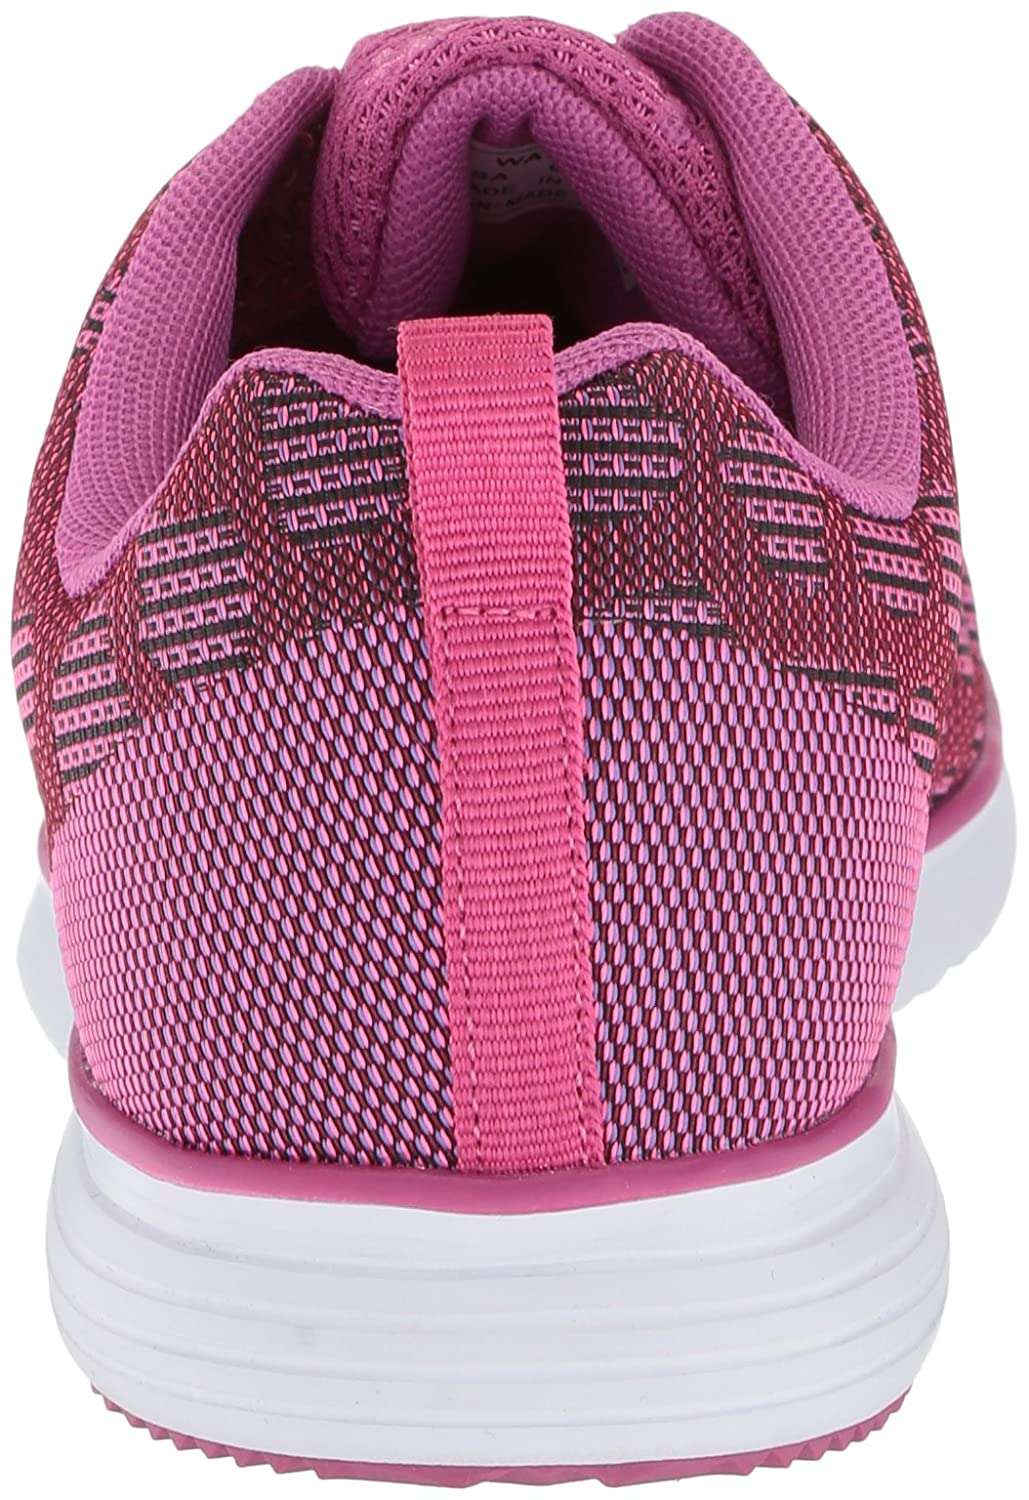 Propét Shoe Women's TravelFit Walking Shoe Propét B073DN25ZR 10 W US|Berry 7823db